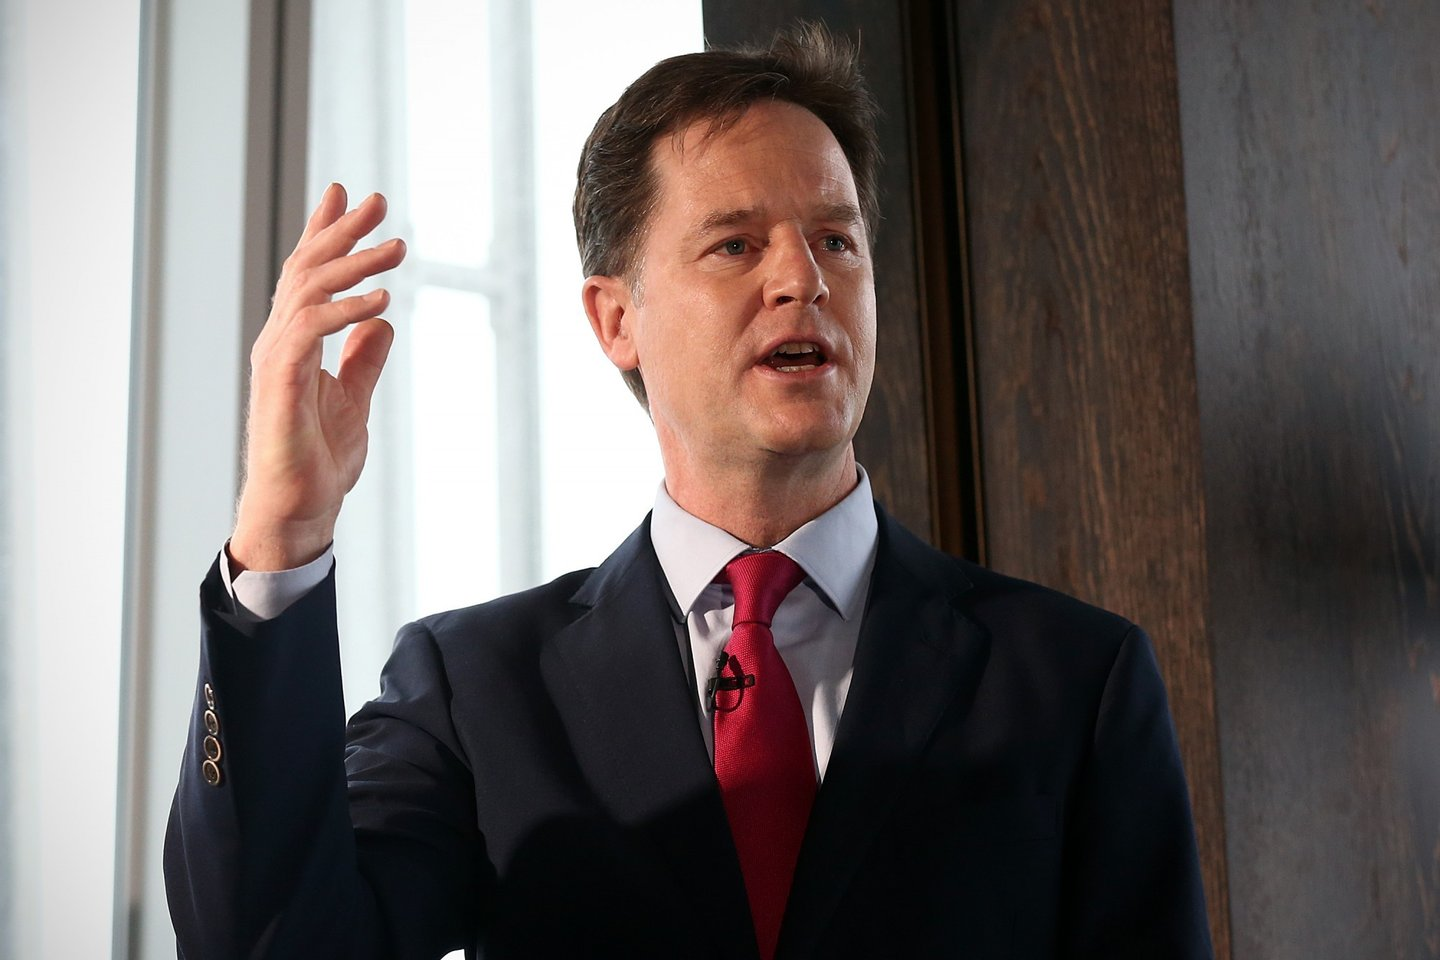 LONDON, ENGLAND - FEBRUARY 05:  Liberal Democrat leader and deputy Prime Minister, Nick Clegg, gestures during a press conference with Chief Secretary to the Treasury, Danny Alexander (not pictured), at the Shangri-La Hotel on February 5, 2015 in London, England. The pair laid out the Liberal Democrats fiscal plans for the next Parliament.  (Photo by Carl Court/Getty Images)